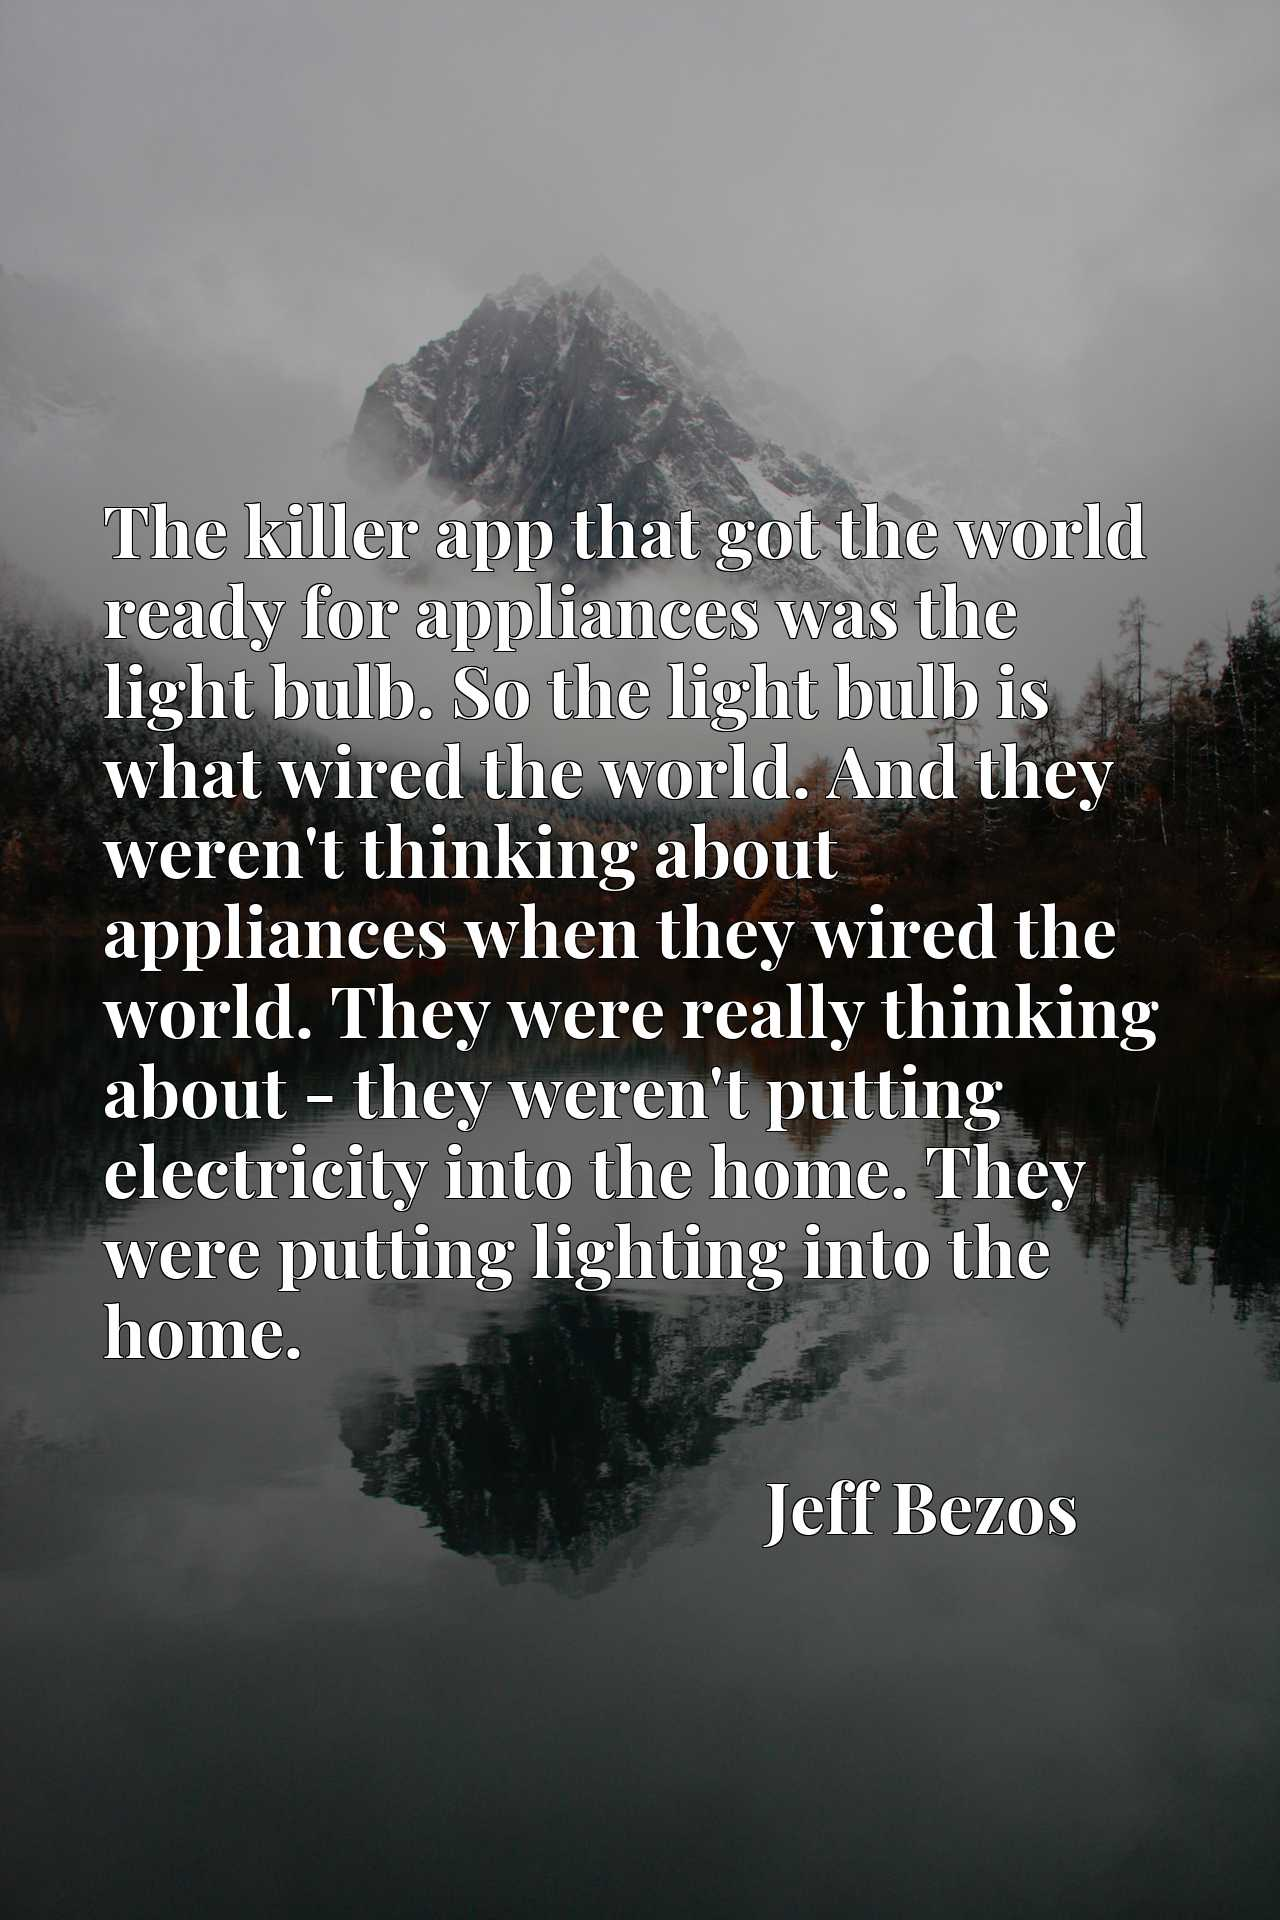 The killer app that got the world ready for appliances was the light bulb. So the light bulb is what wired the world. And they weren't thinking about appliances when they wired the world. They were really thinking about - they weren't putting electricity into the home. They were putting lighting into the home.